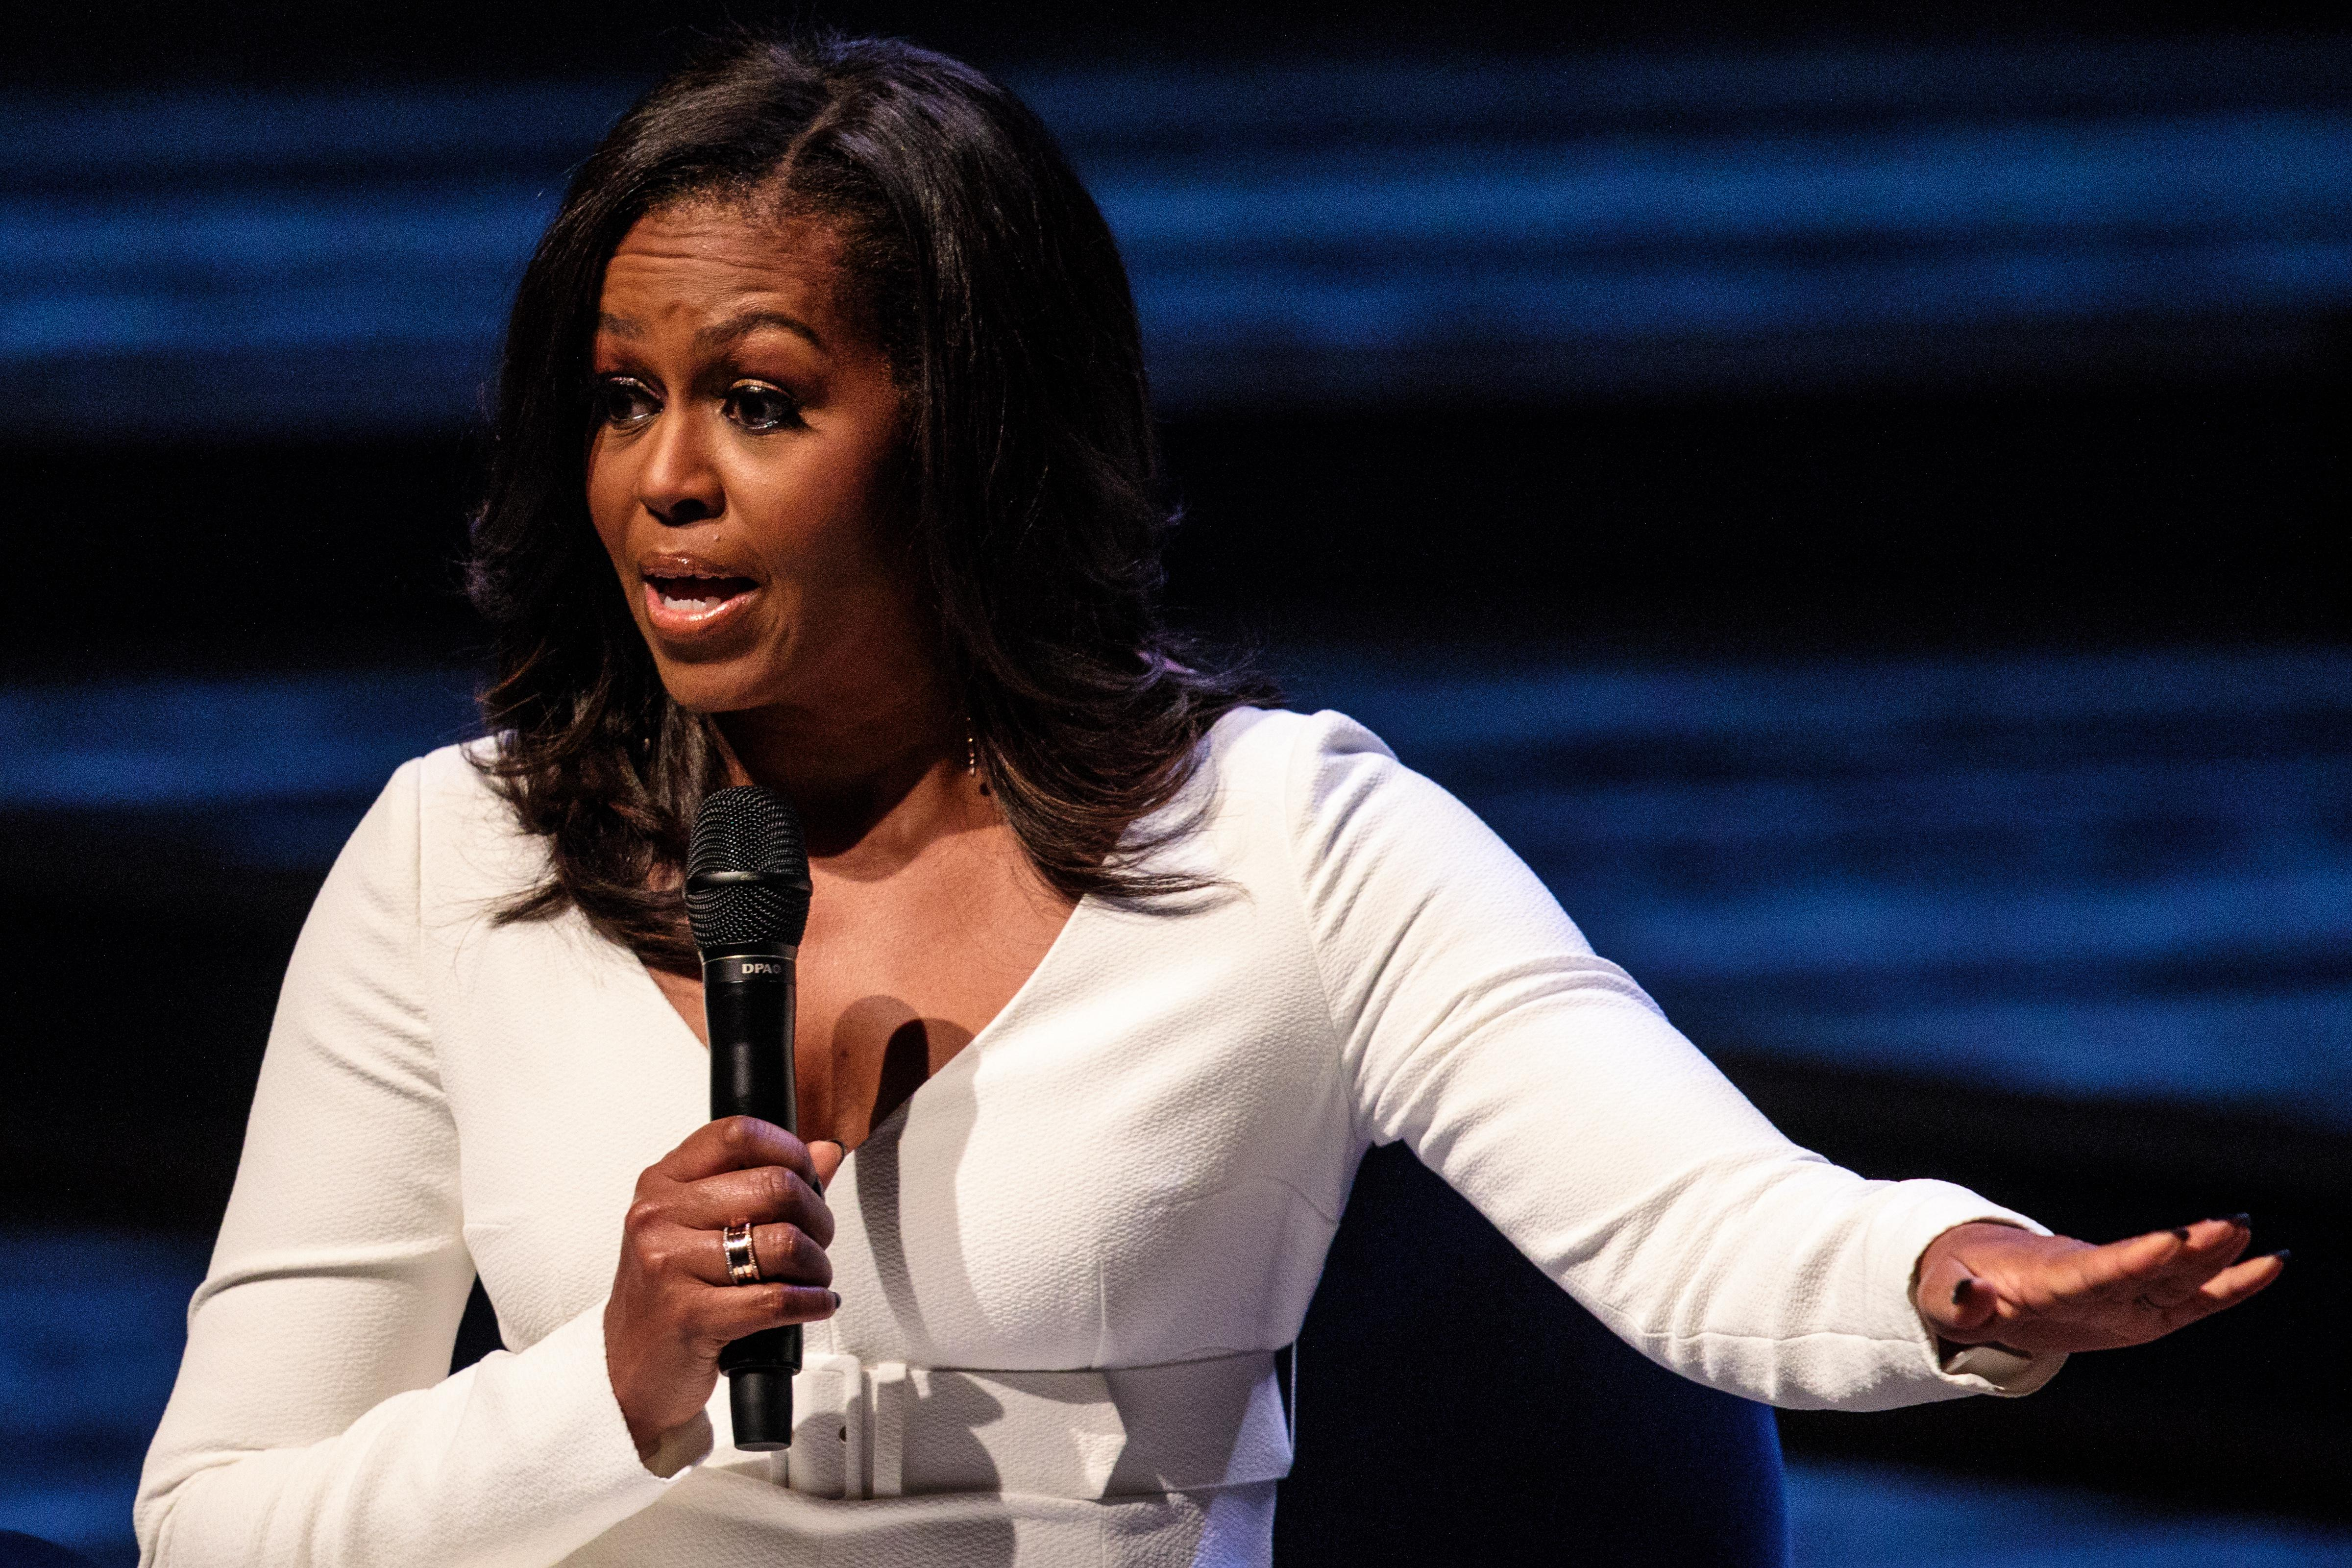 Former U.S. First Lady Michelle Obama speaks onstage, wearing a white pantsuit